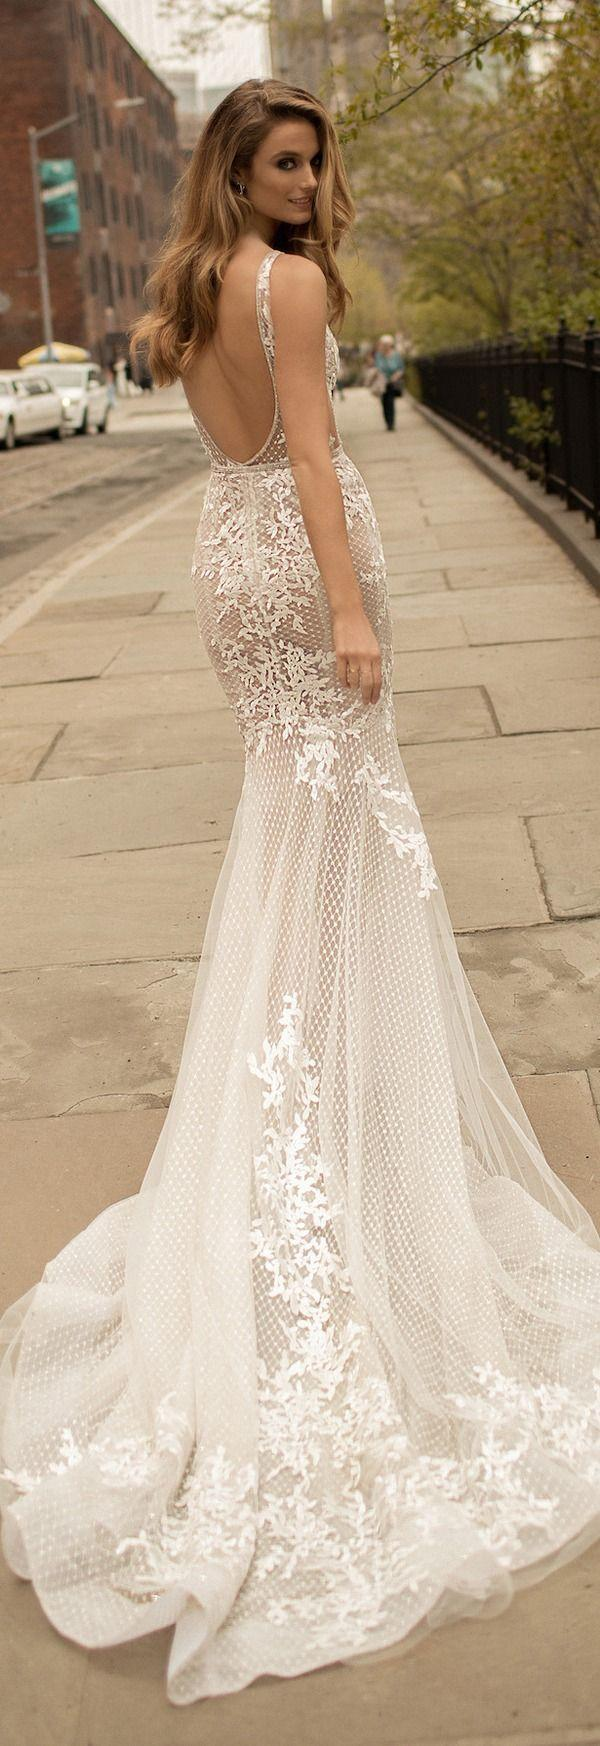 Wedding - Berta Spring Wedding Dresses 2018